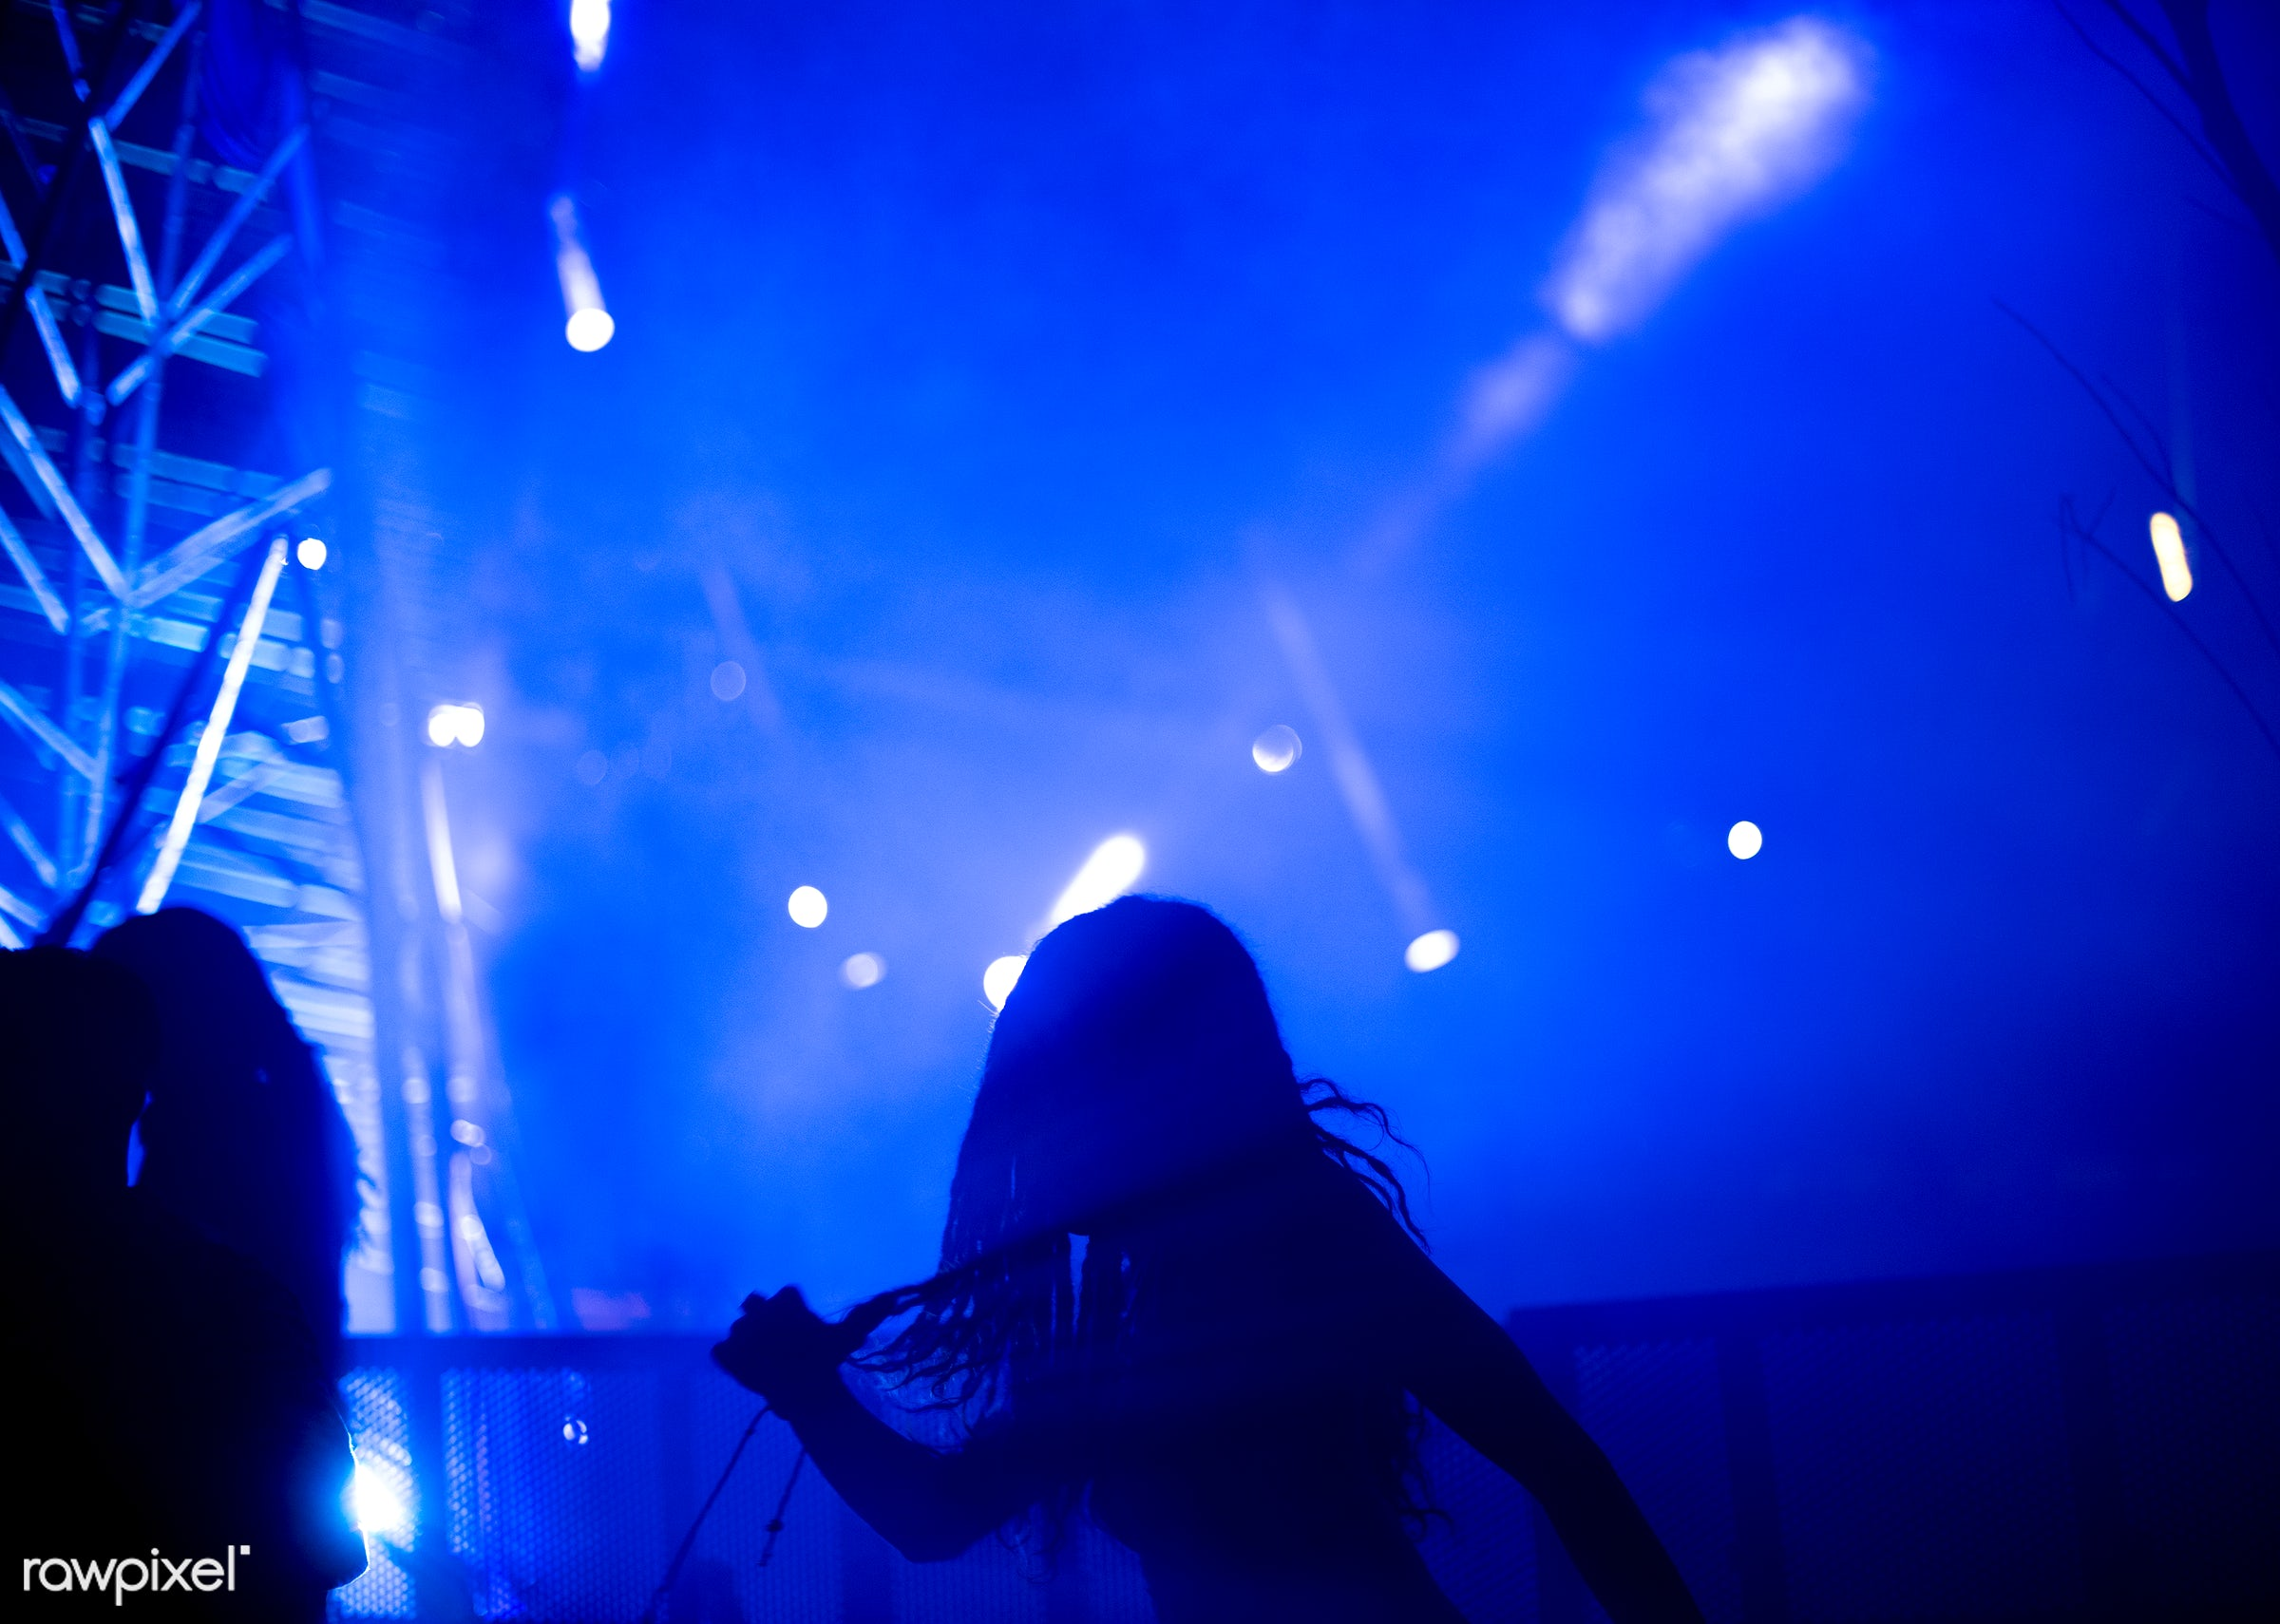 illuminated, concert, person, show, perform, party, people, production, woman, event, mixing, lifestyle, musician,...